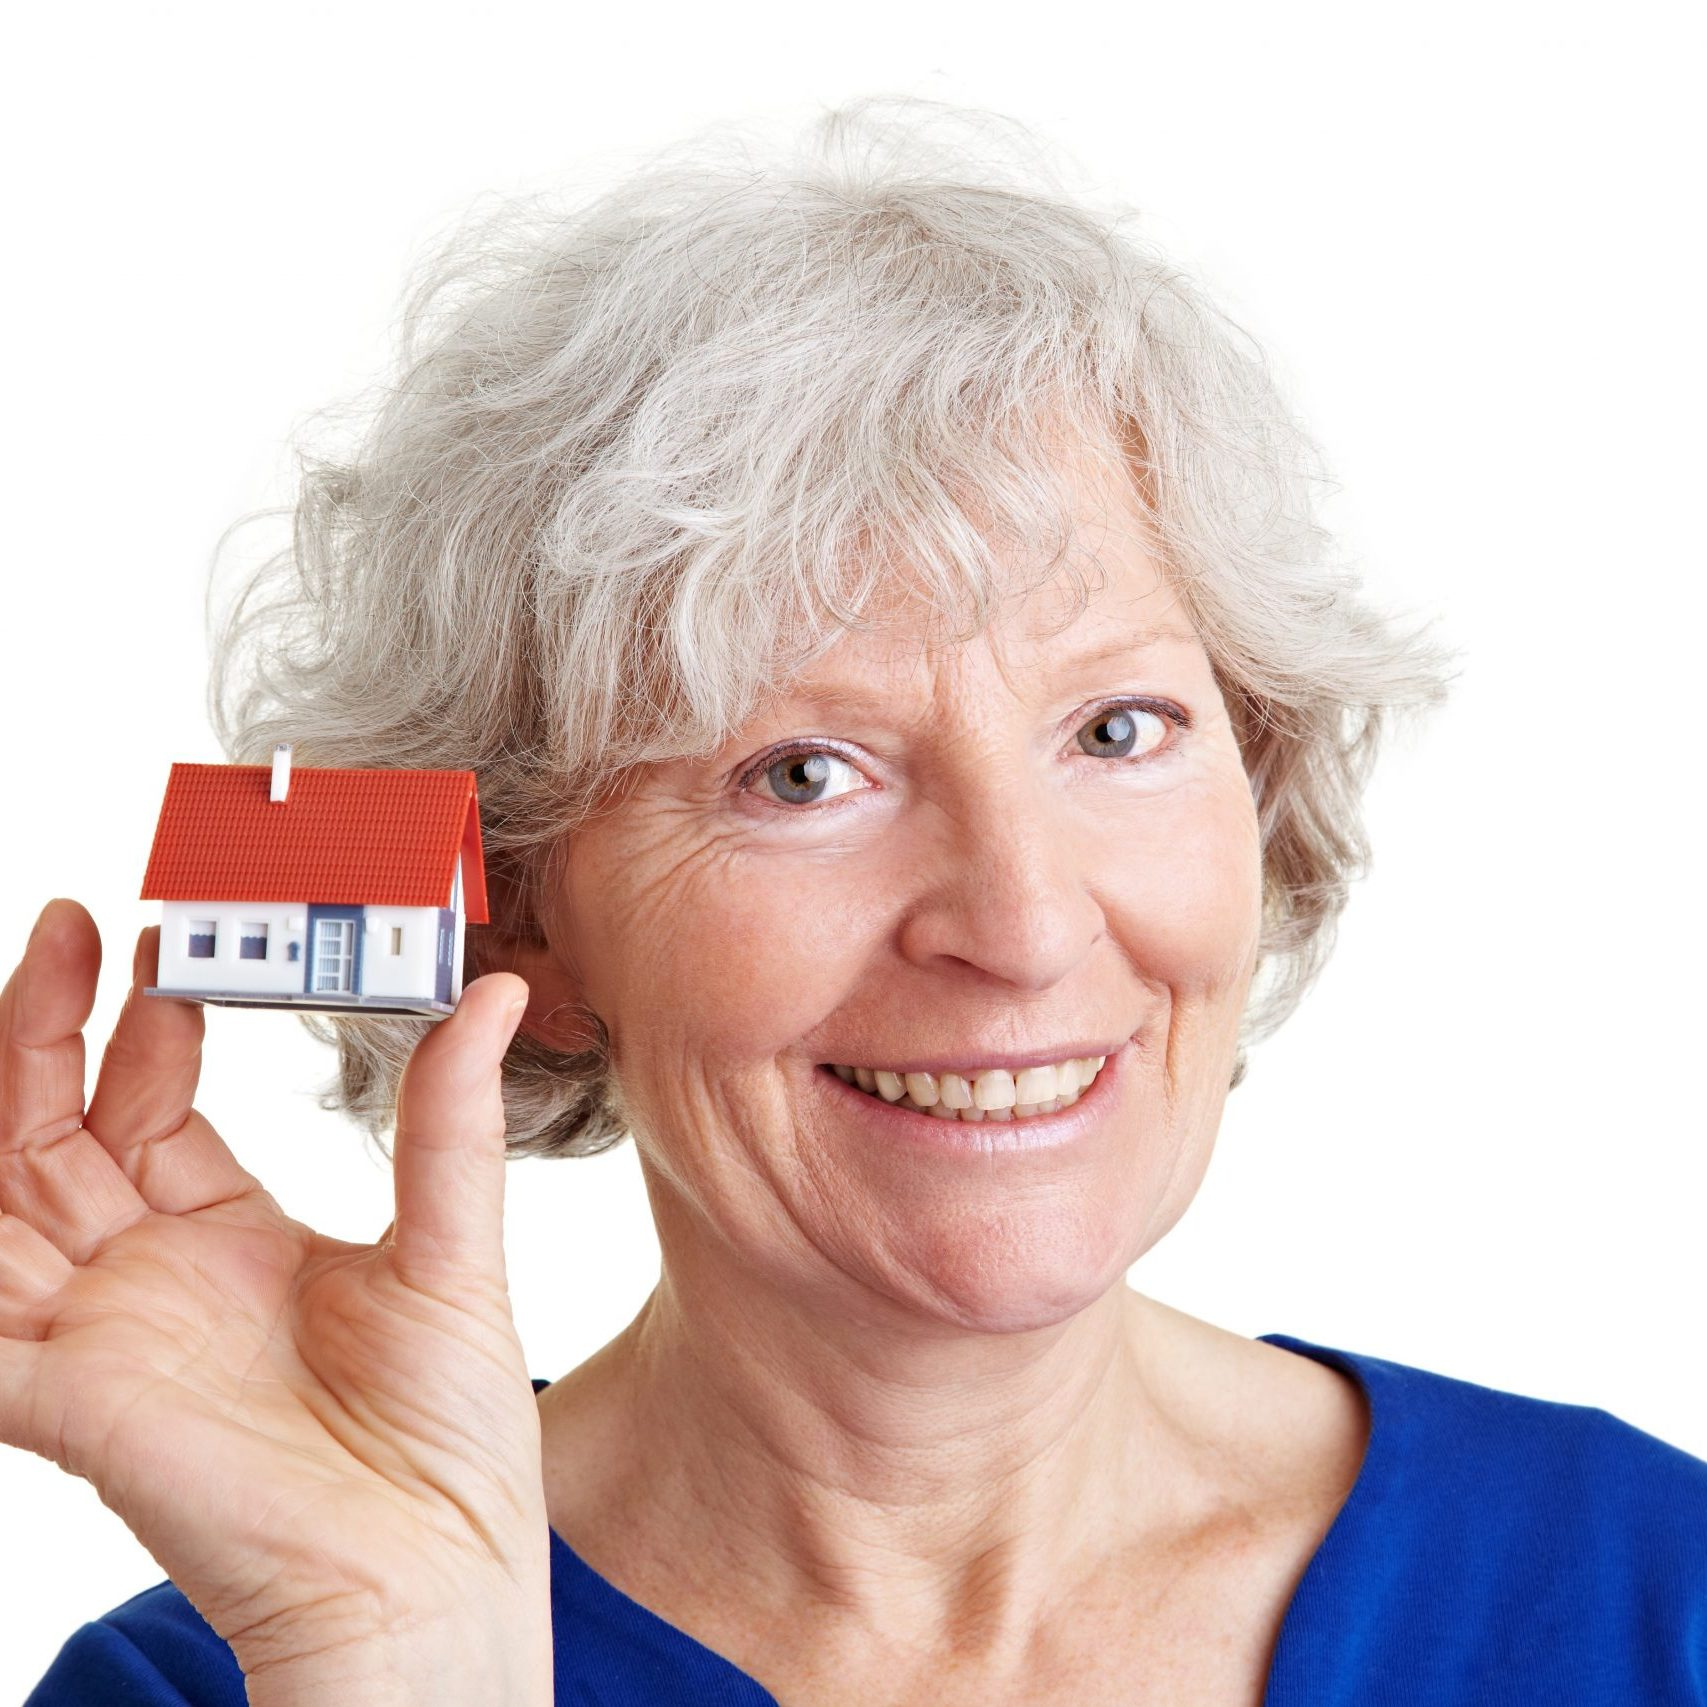 A senior lady holding a small toy house